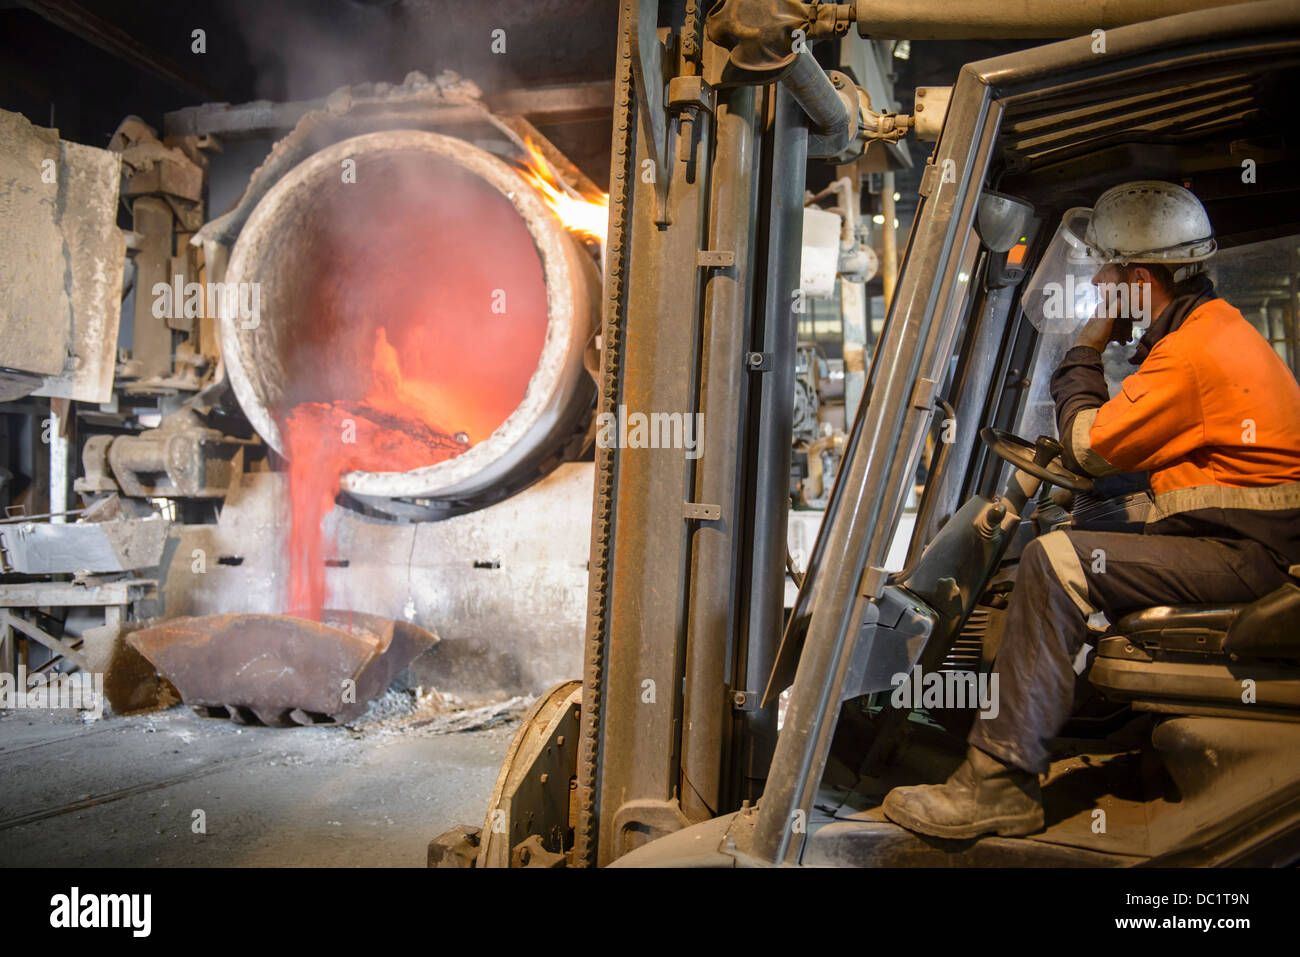 Worker monitoring molten aluminum running into mold - Stock Image